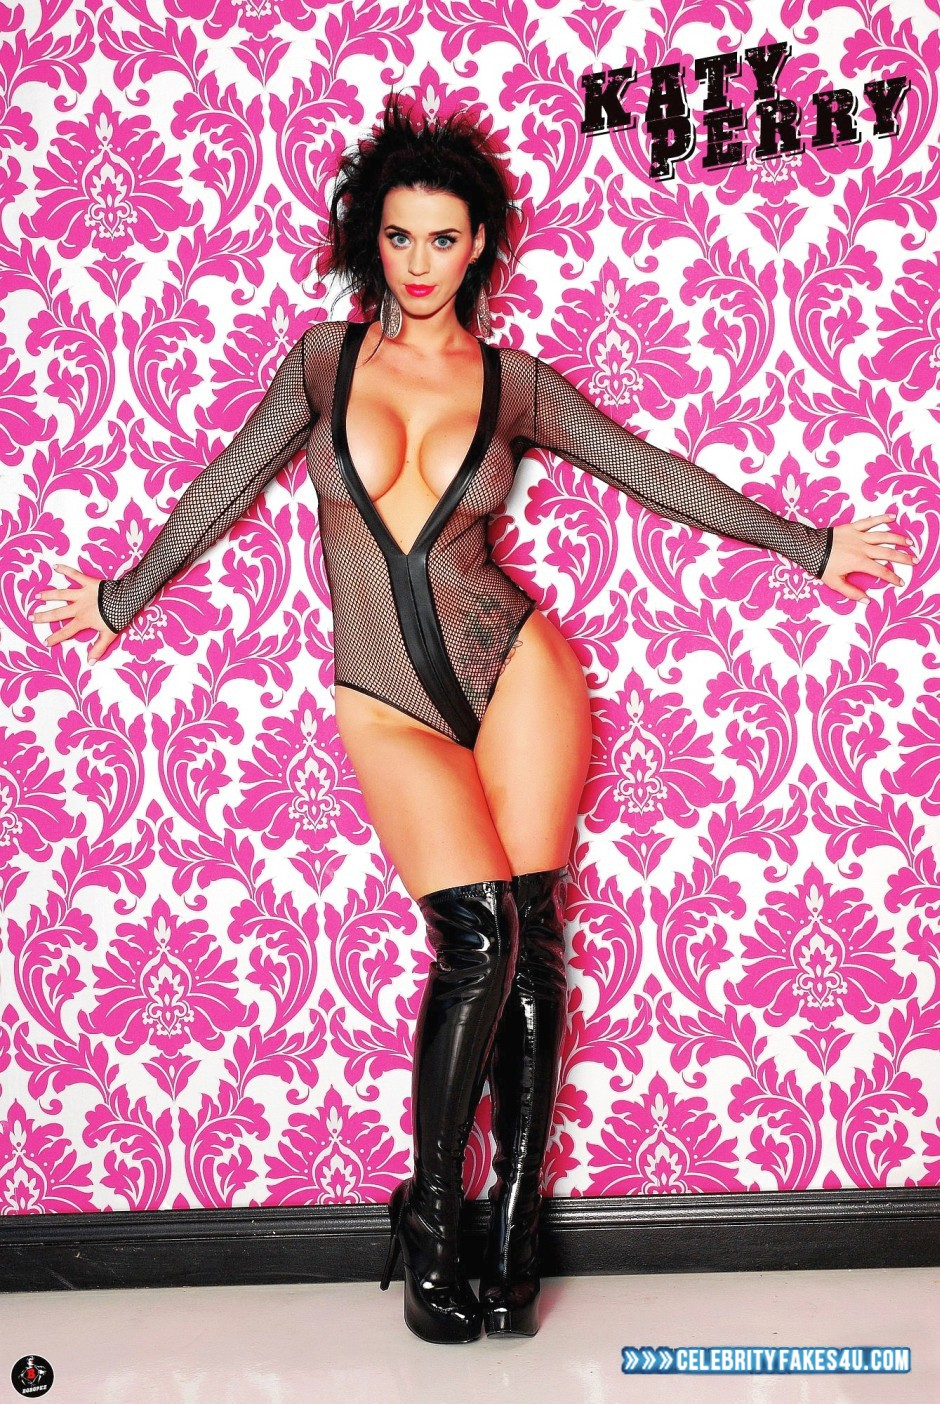 Katy Perry Fake, Completely Naked Body / Fully Nude, Knee-High Boots, Lipstick, Nude, Tits, Porn